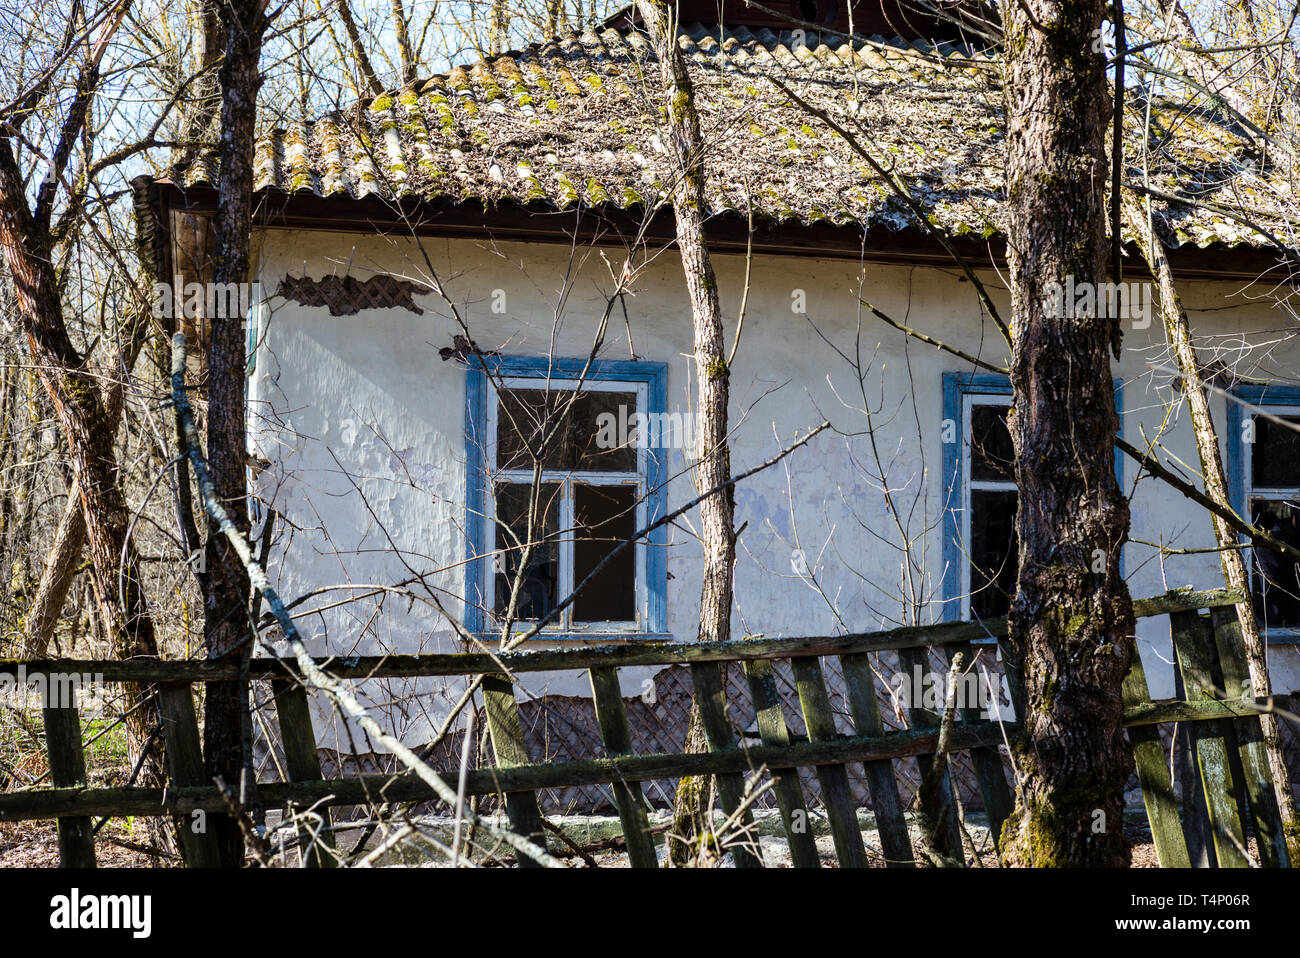 Abandoned village house in the village of Zalyssia, inside the Chernobyl exclusion zone, Ukraine, April 2019 - Stock Image